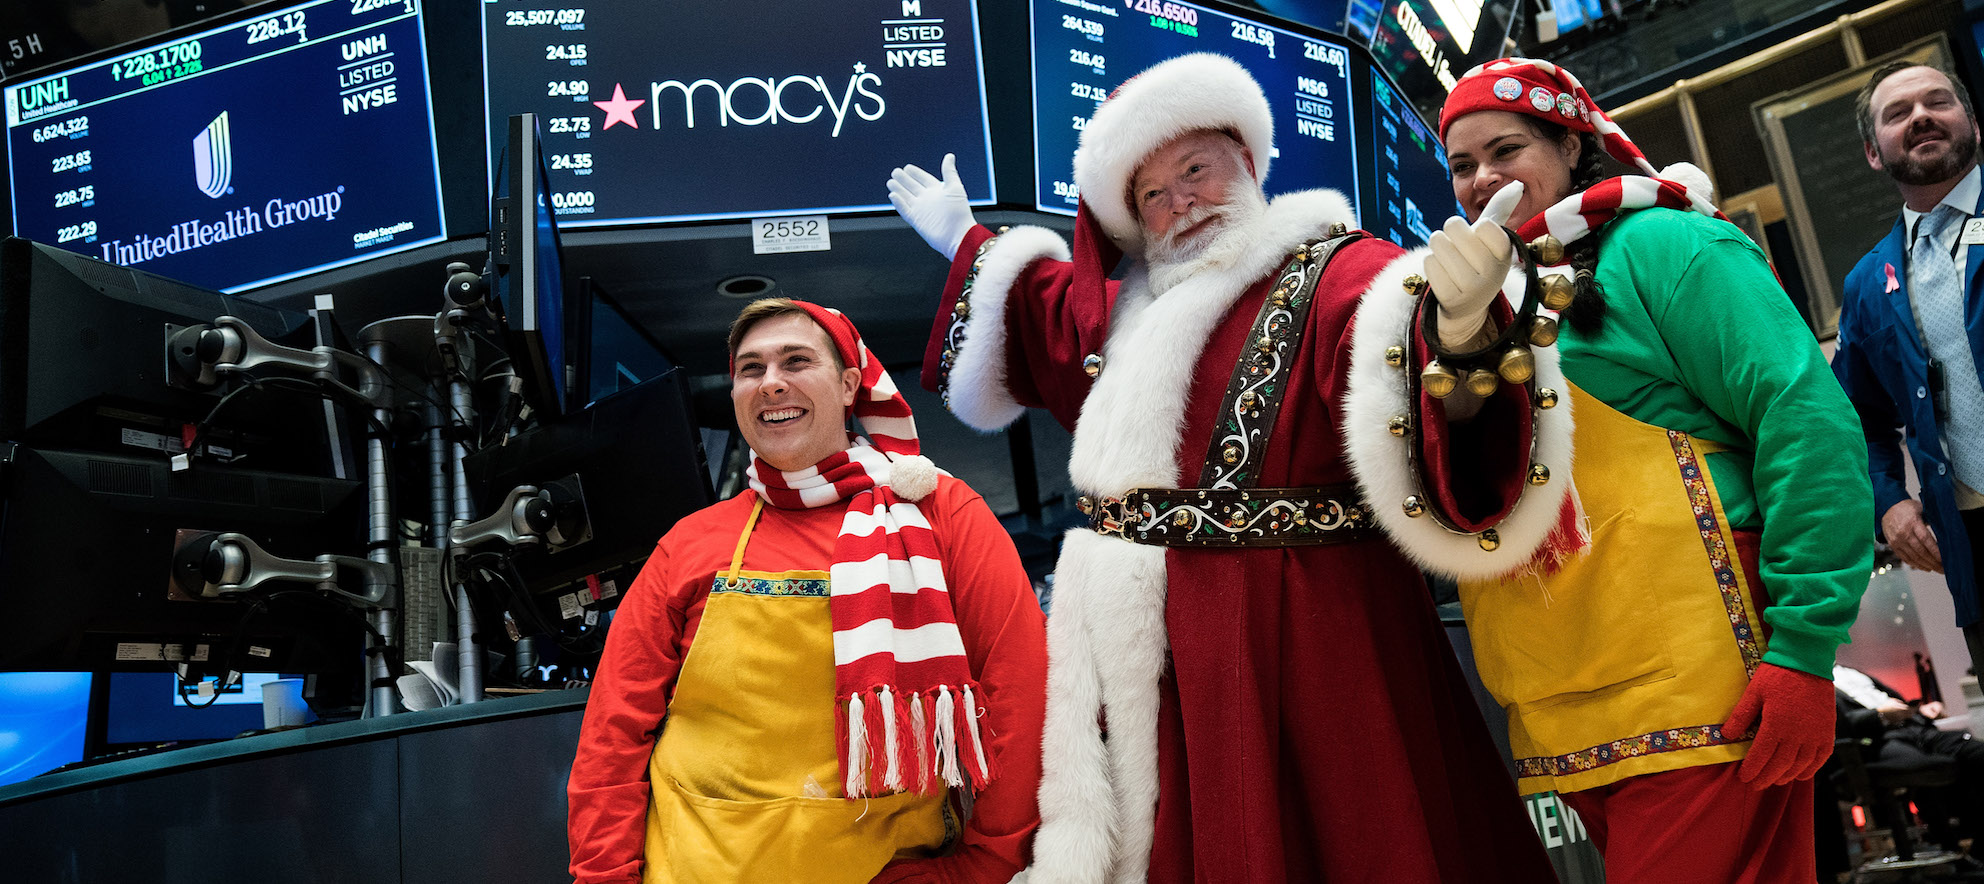 Watch out for your uncle's drunken holiday antics, but the economy is booming